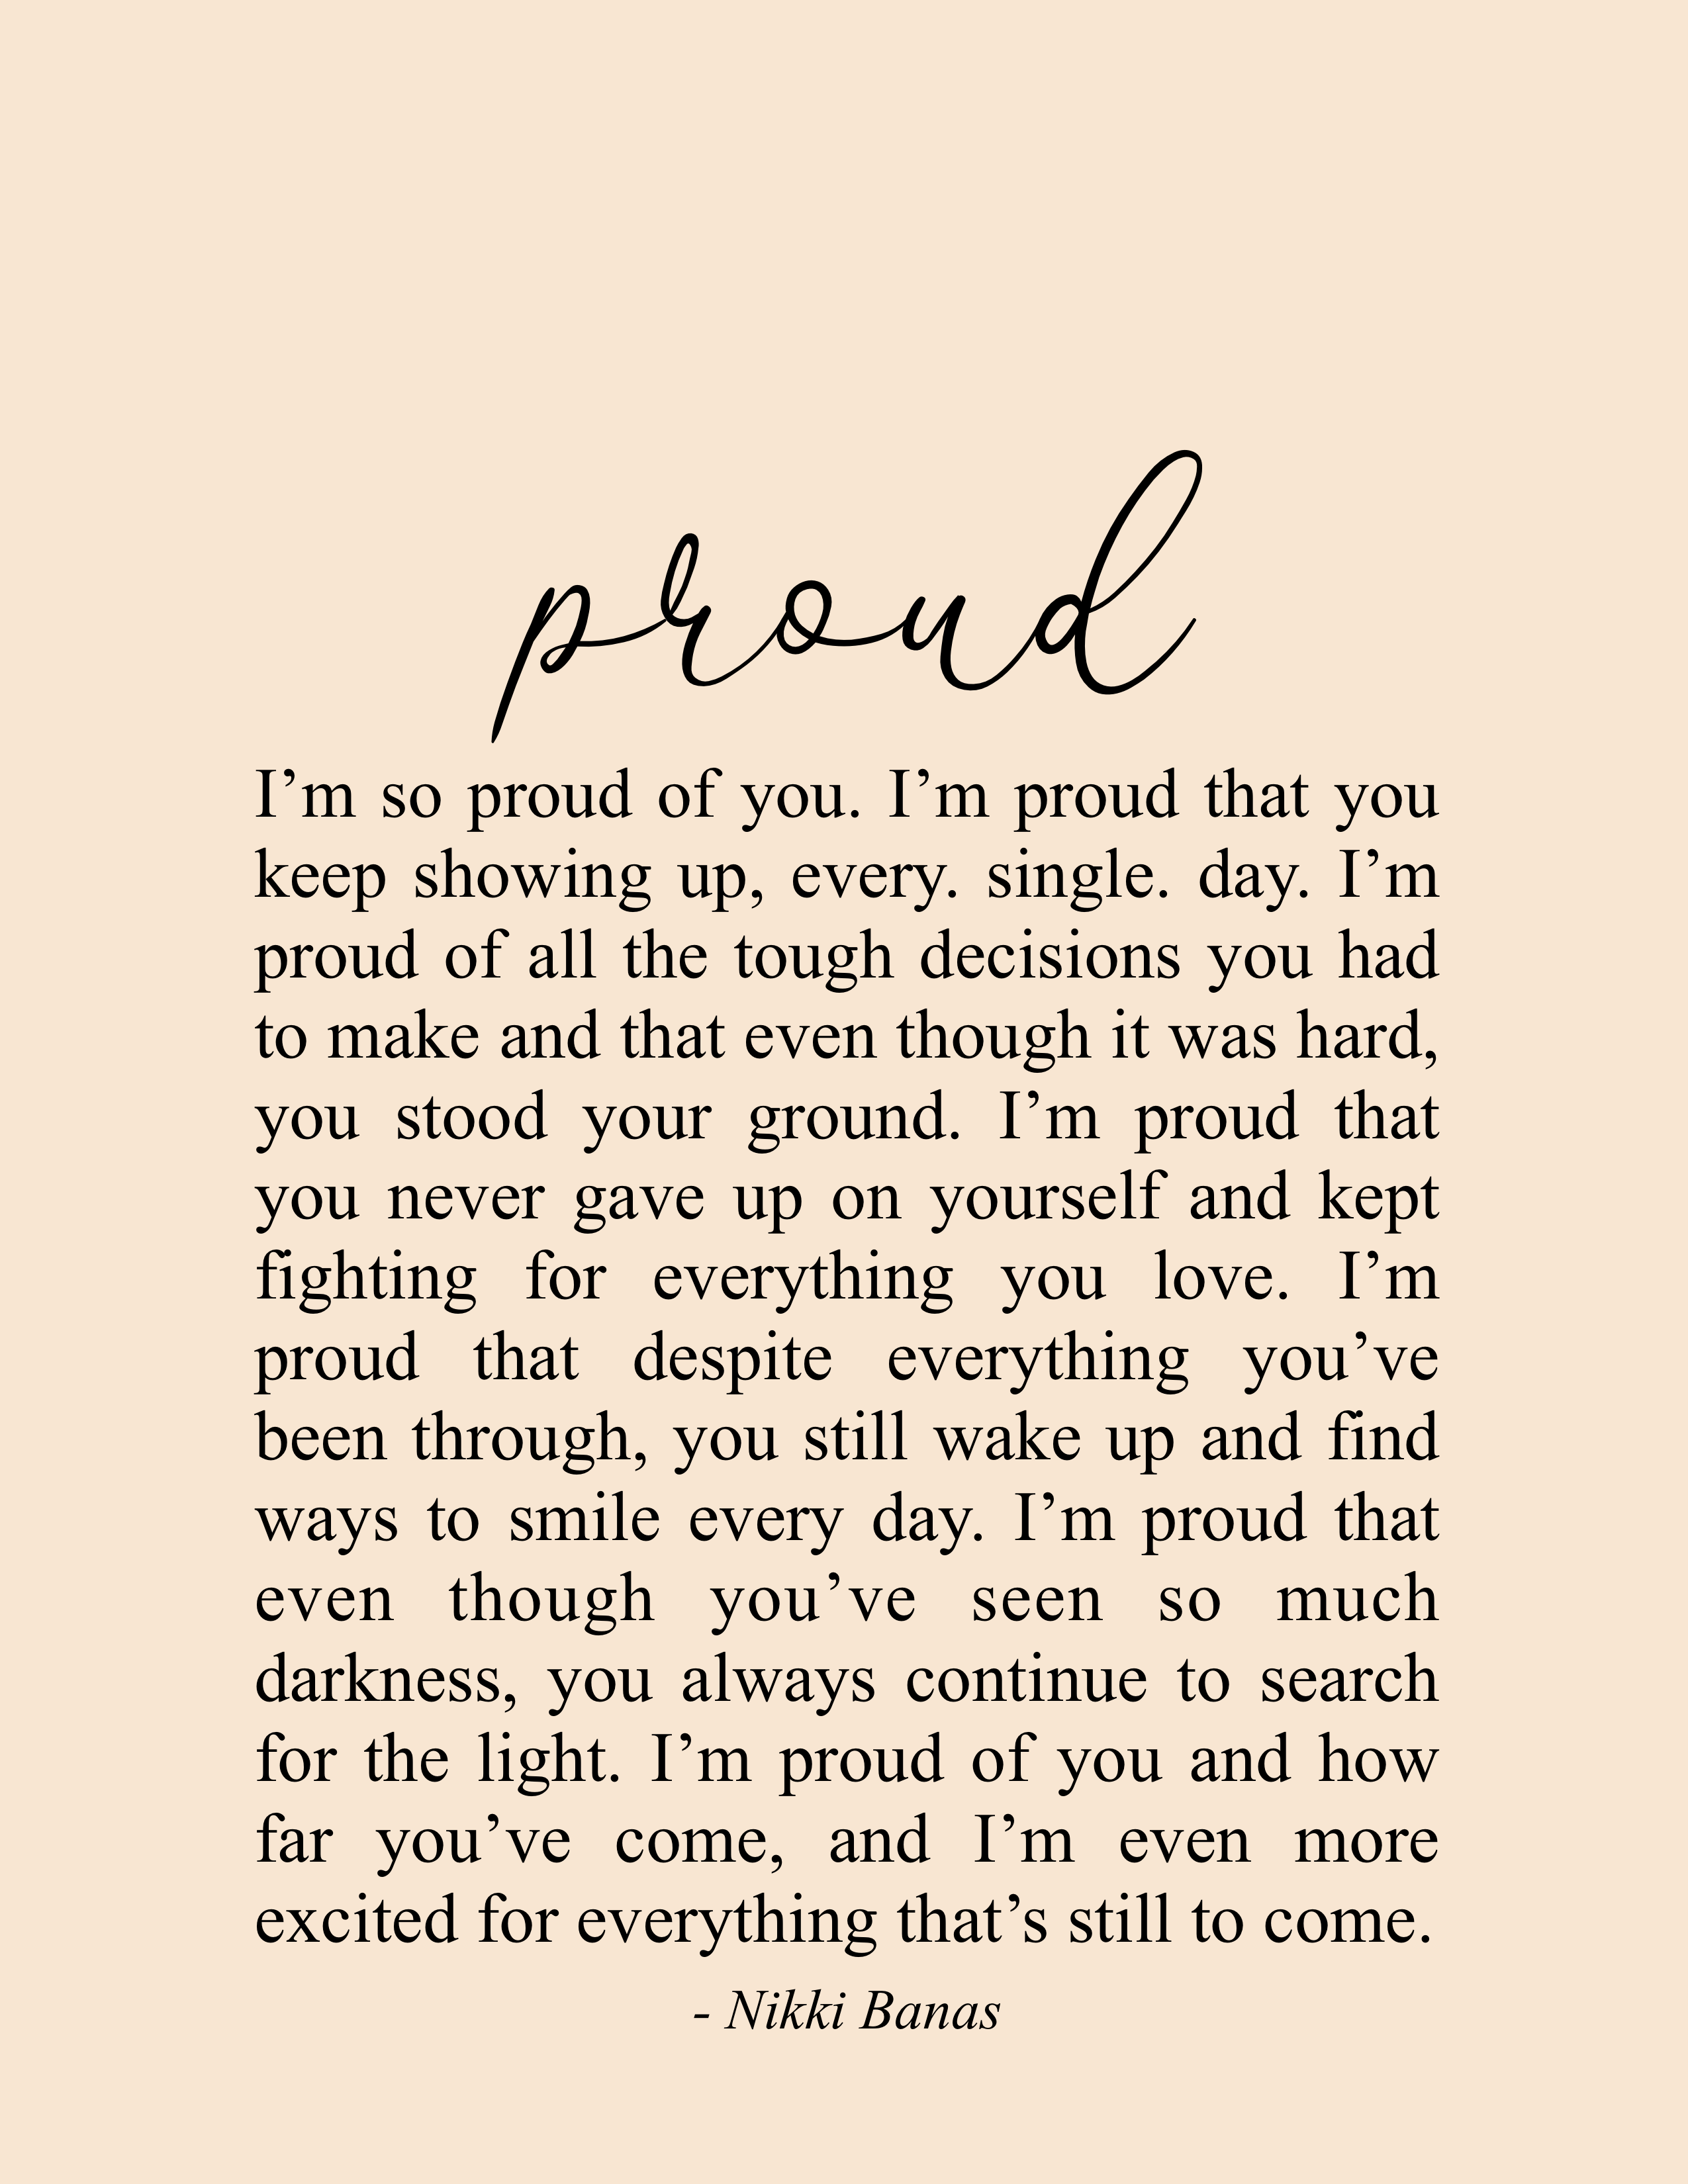 Proud Of You Quote Poetry Nikki Banas Walk The Earth Proud Proud Of You Quotes Encouragement Quotes Be Yourself Quotes